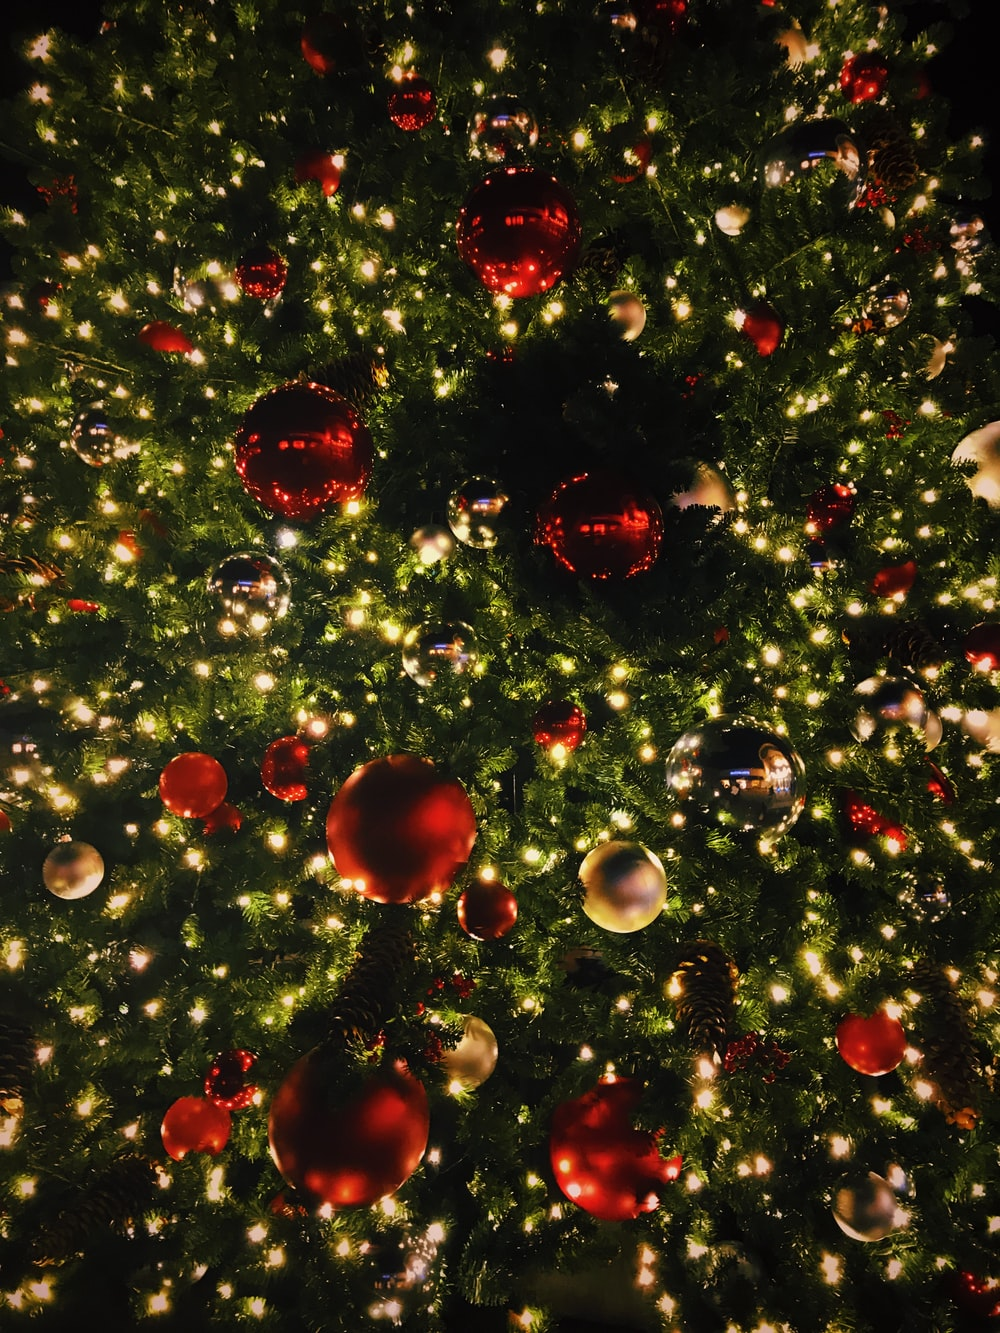 view photography of Christmas tree with baubles and lighted string lights